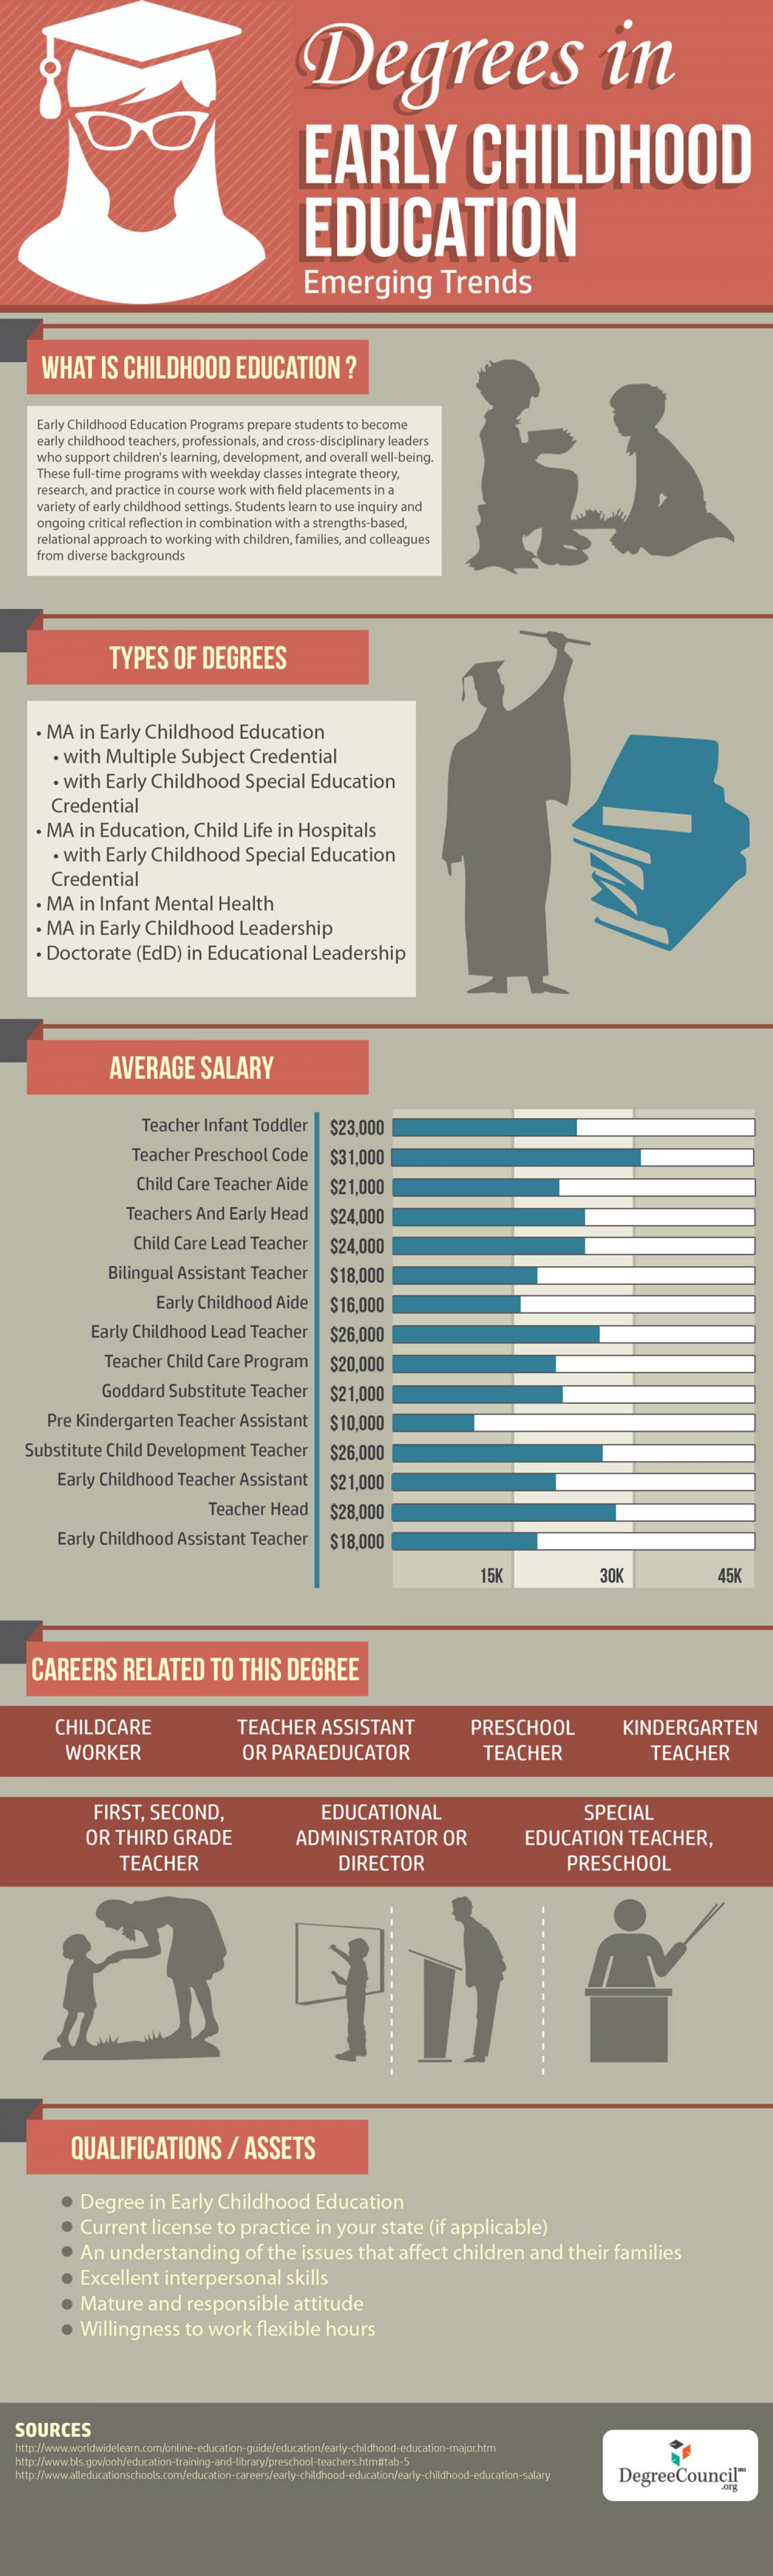 Degrees in Early Childhood Education - 2014 Emerging Trends Infographic